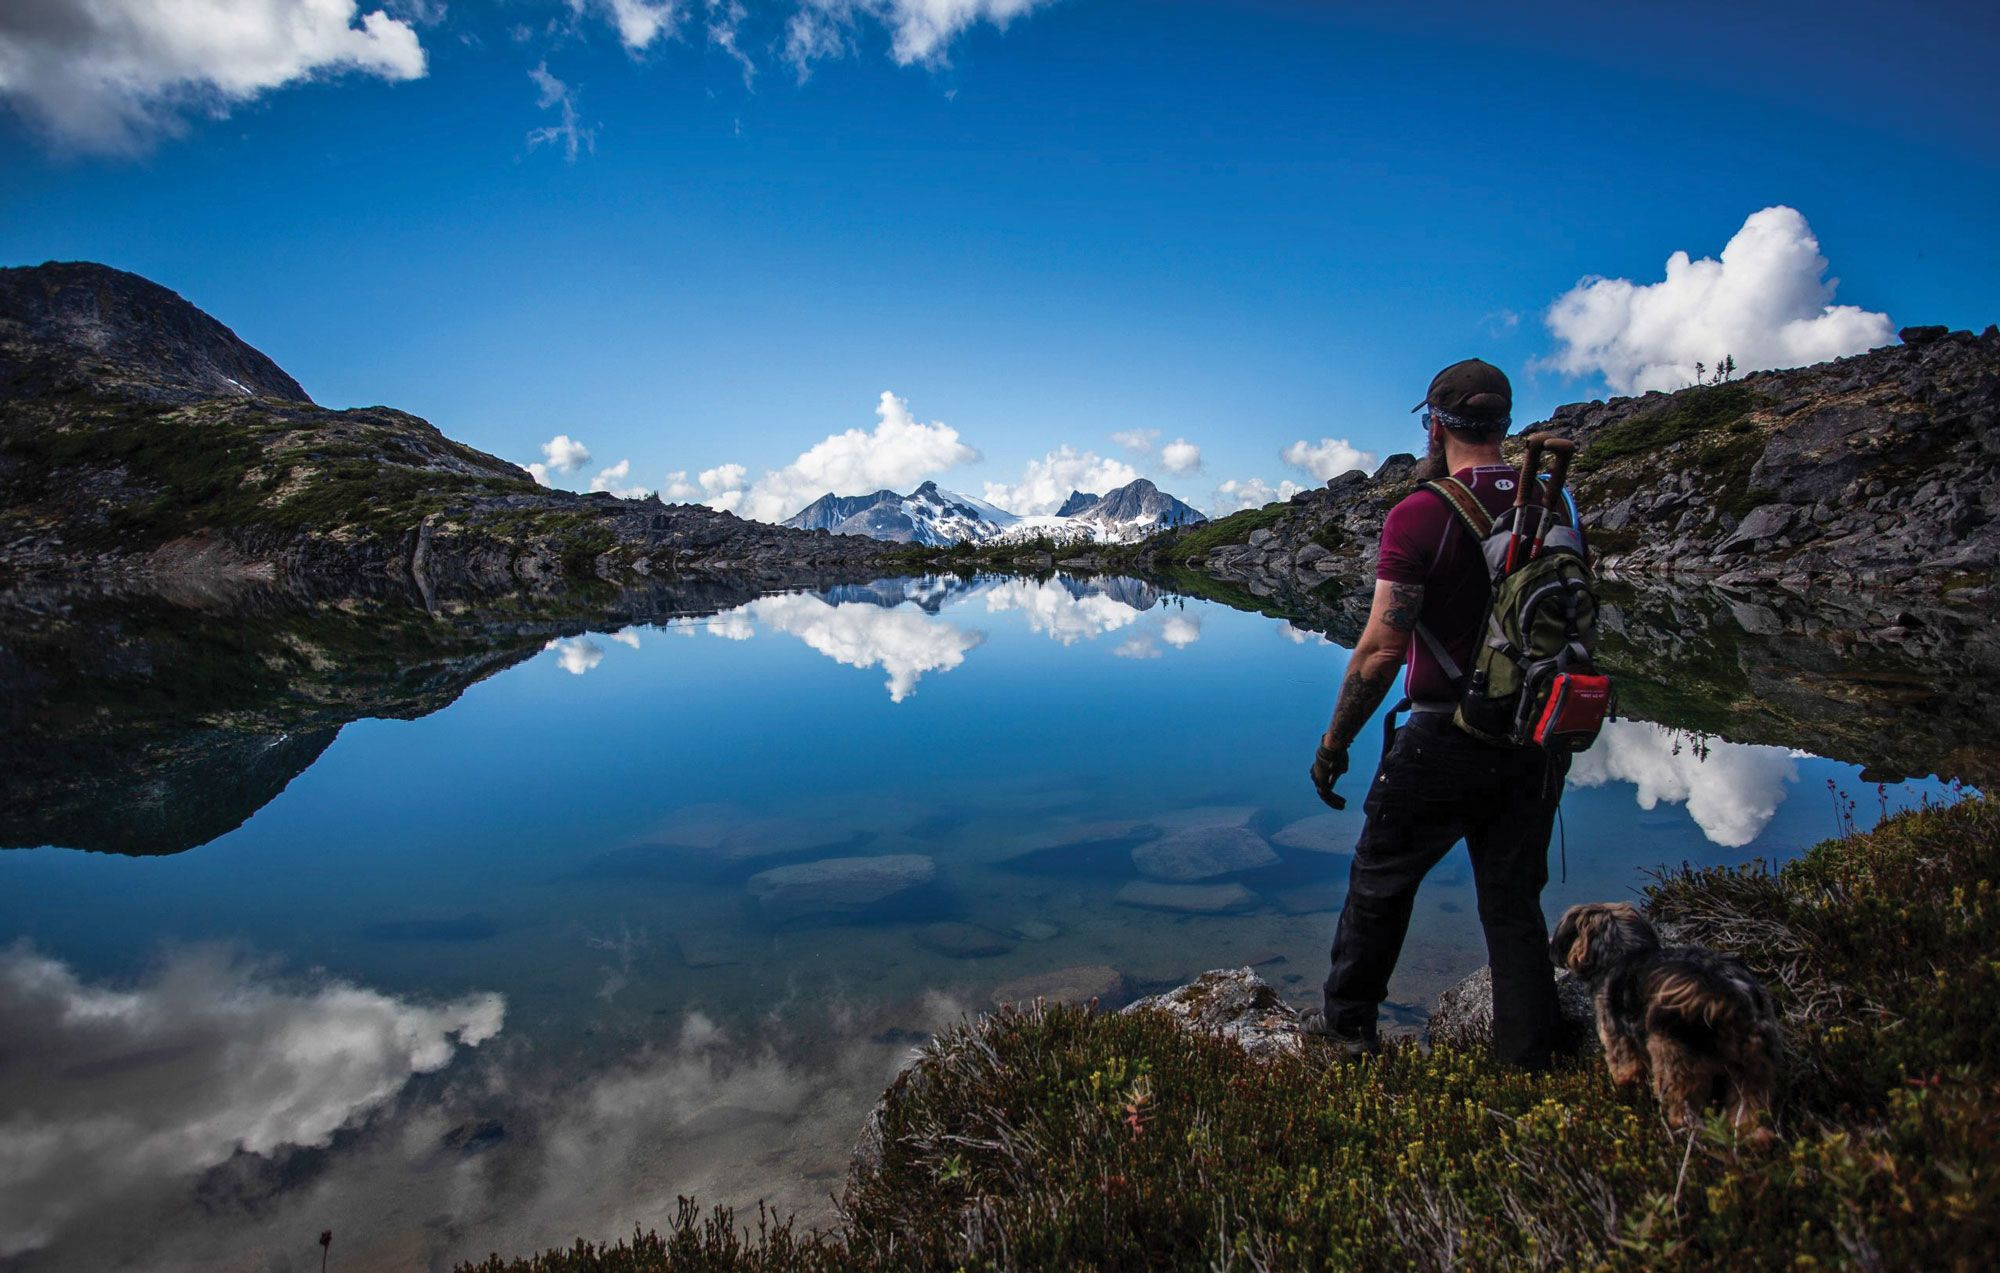 Skagway's mayor, Andrew Cremata, pictured here hiking in the Skagway area, said that locals like him are mobilizing to get friends and family to come visit the cruise-dependent town this summer.